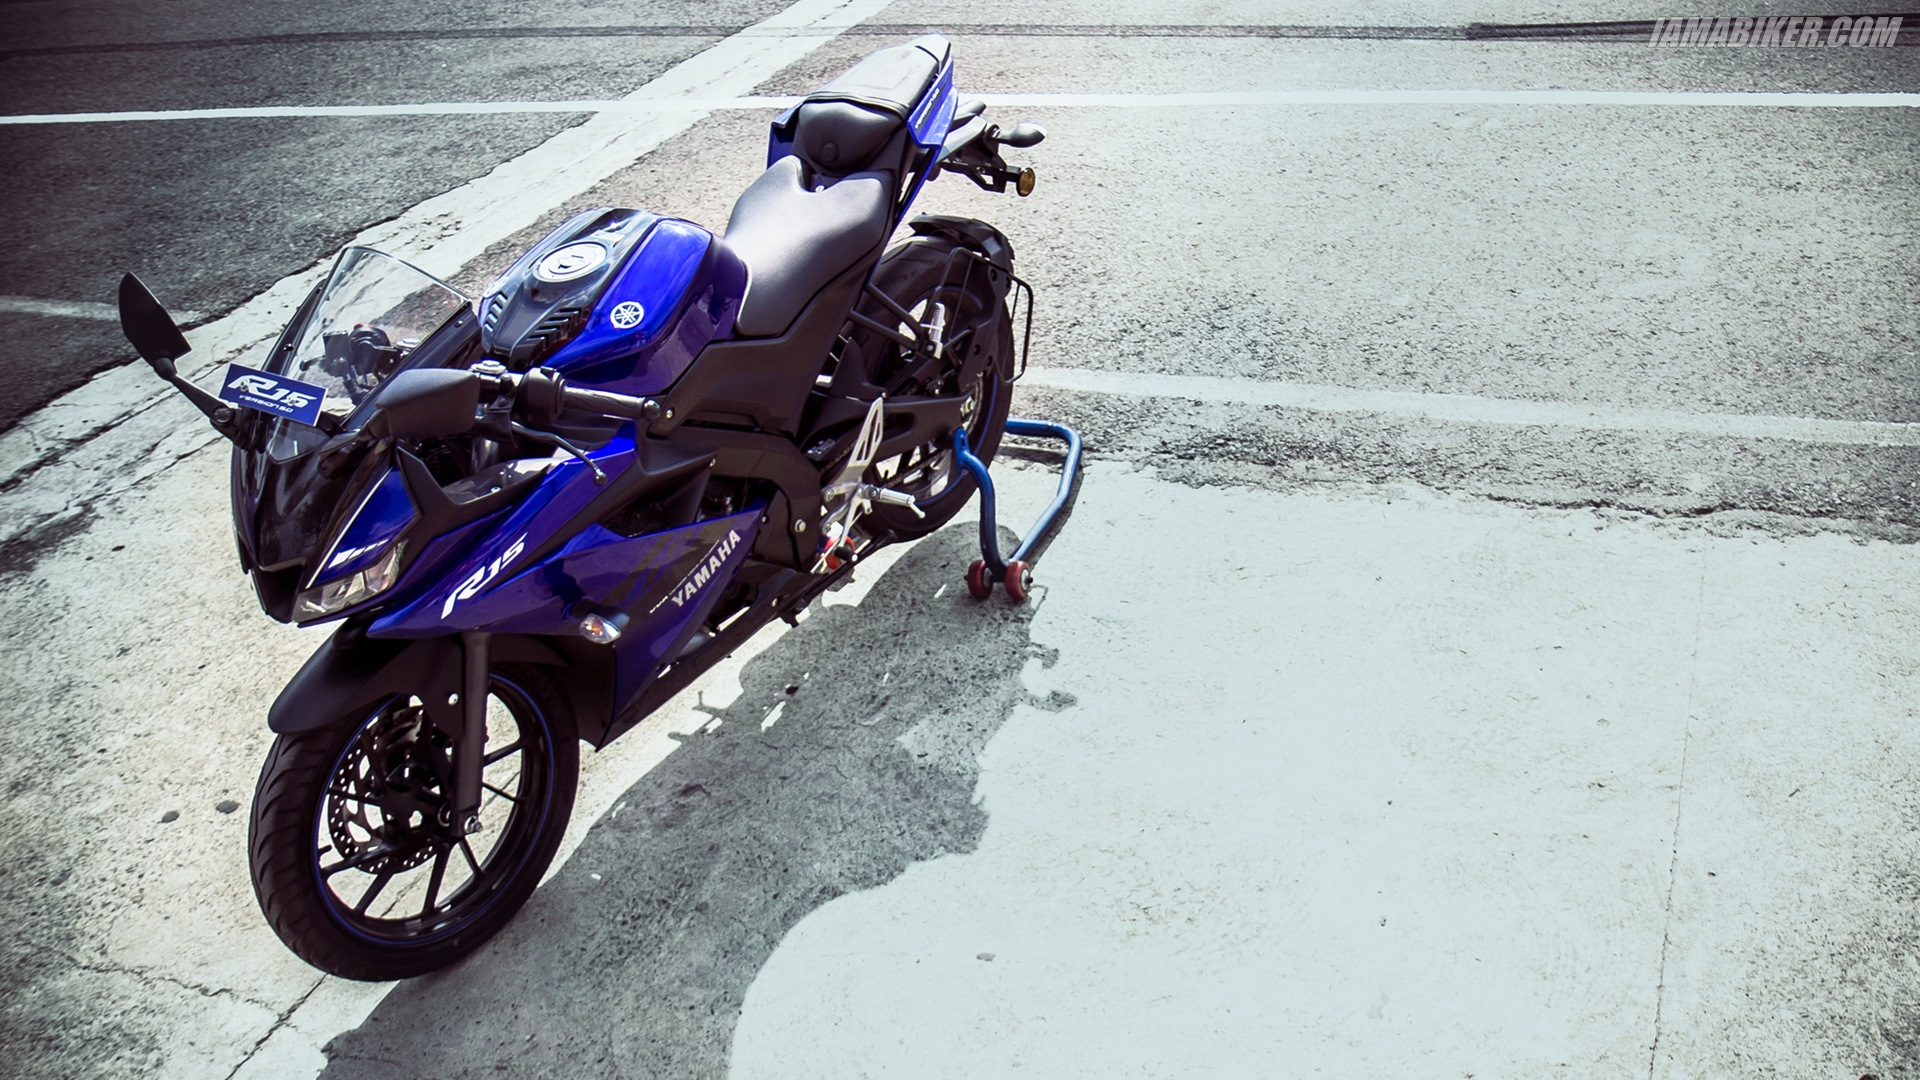 yamaha r15 v3 hd wallpapers | iamabiker